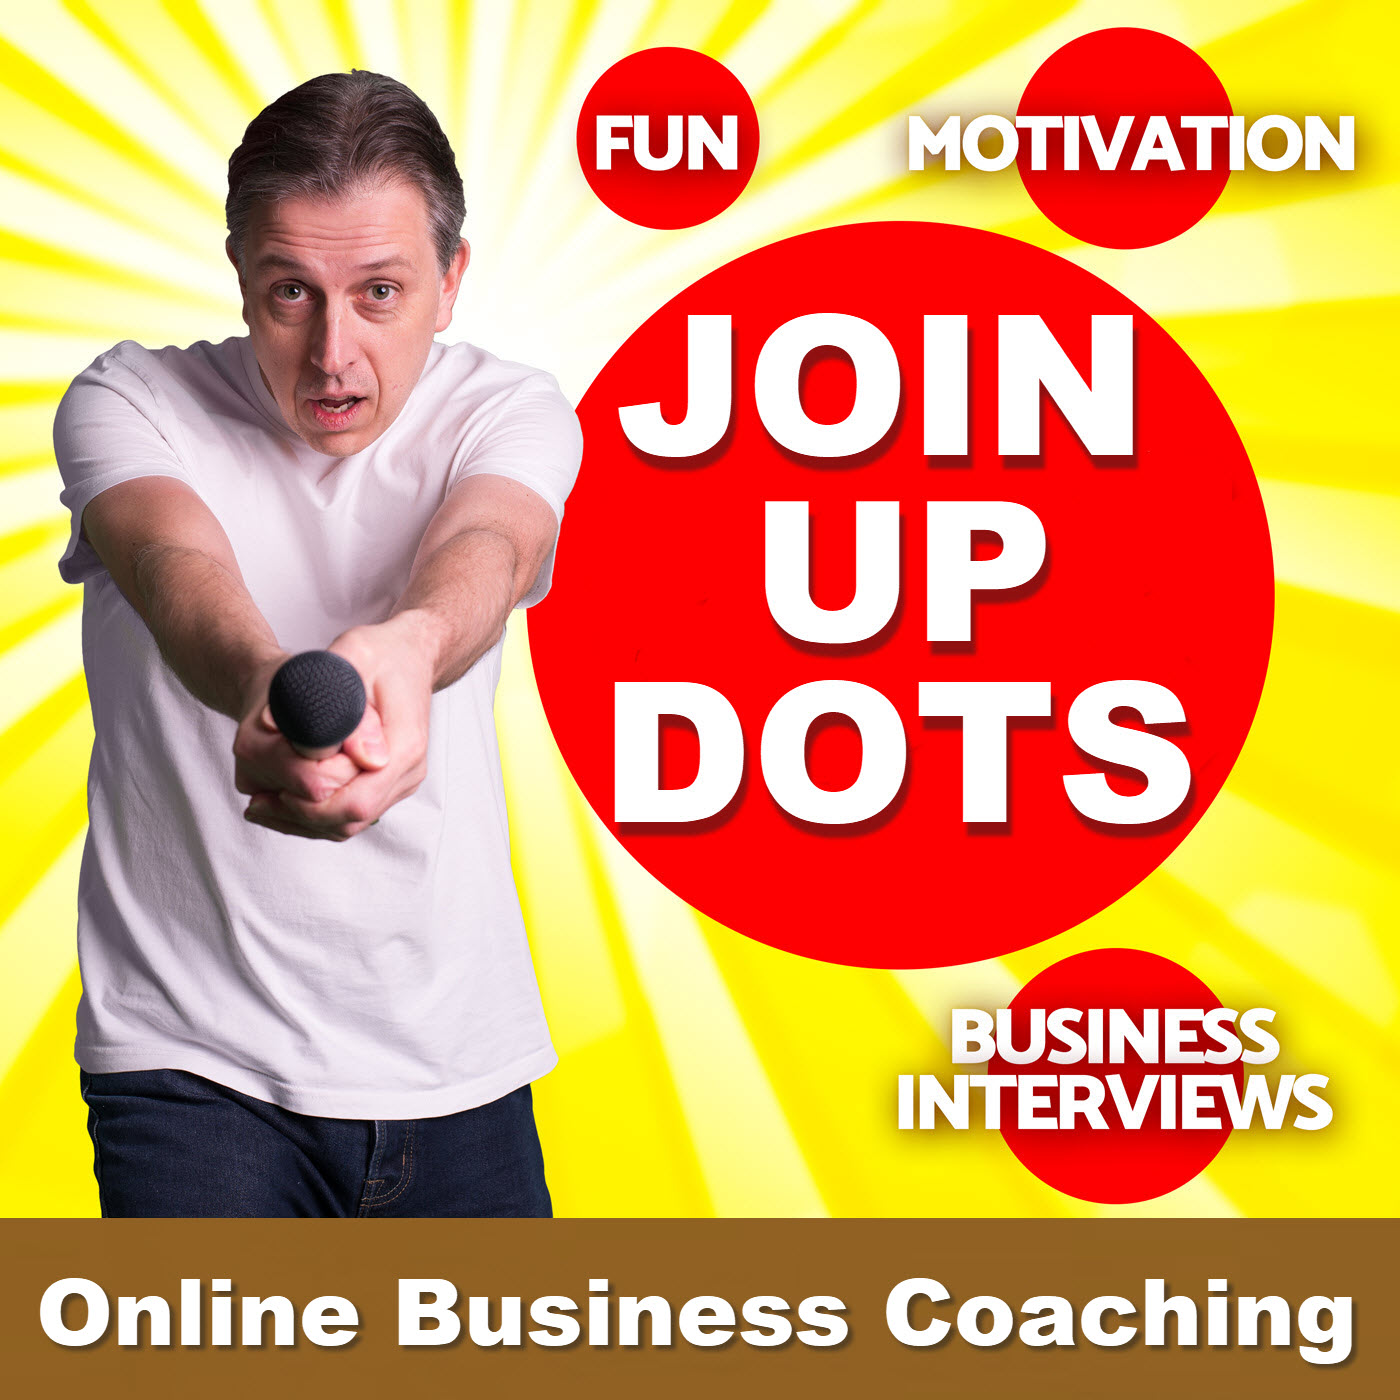 Entrepreneur Success Stories With Join Up Dots - Motivation, Confidence, & Small Business Coaching To Start Your Online Career